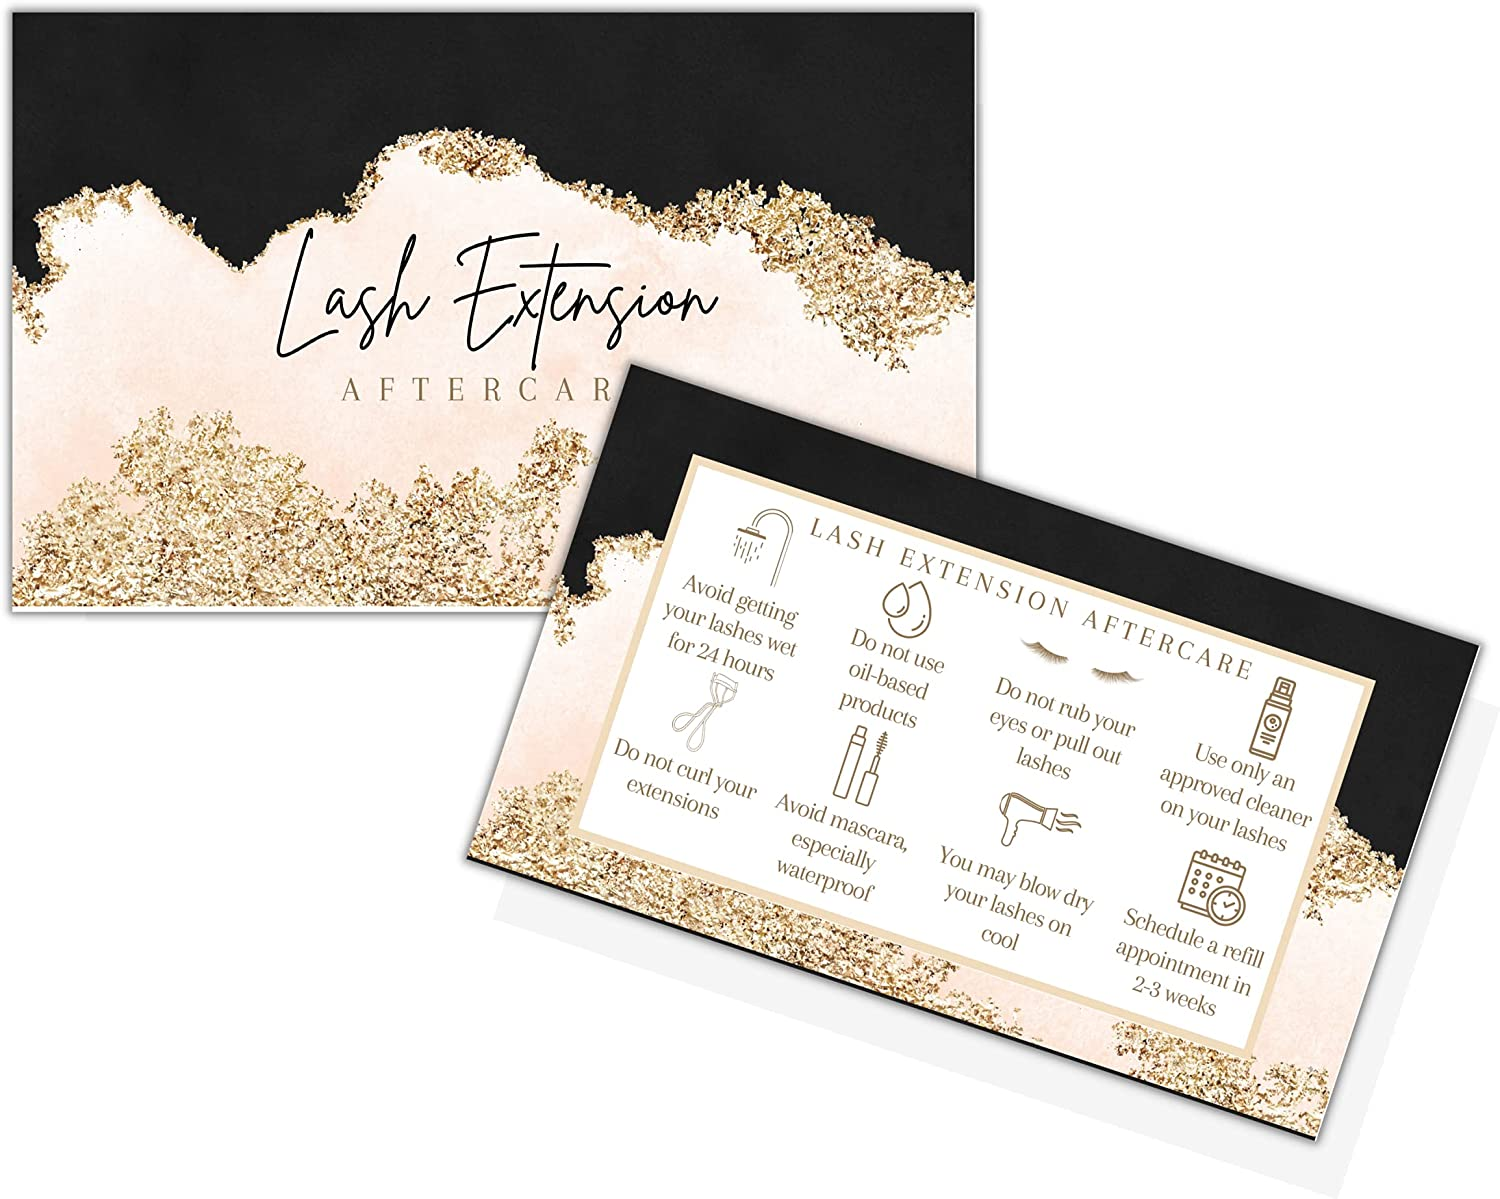 Lash Extension Aftercare Instructions Cards 2x3.5